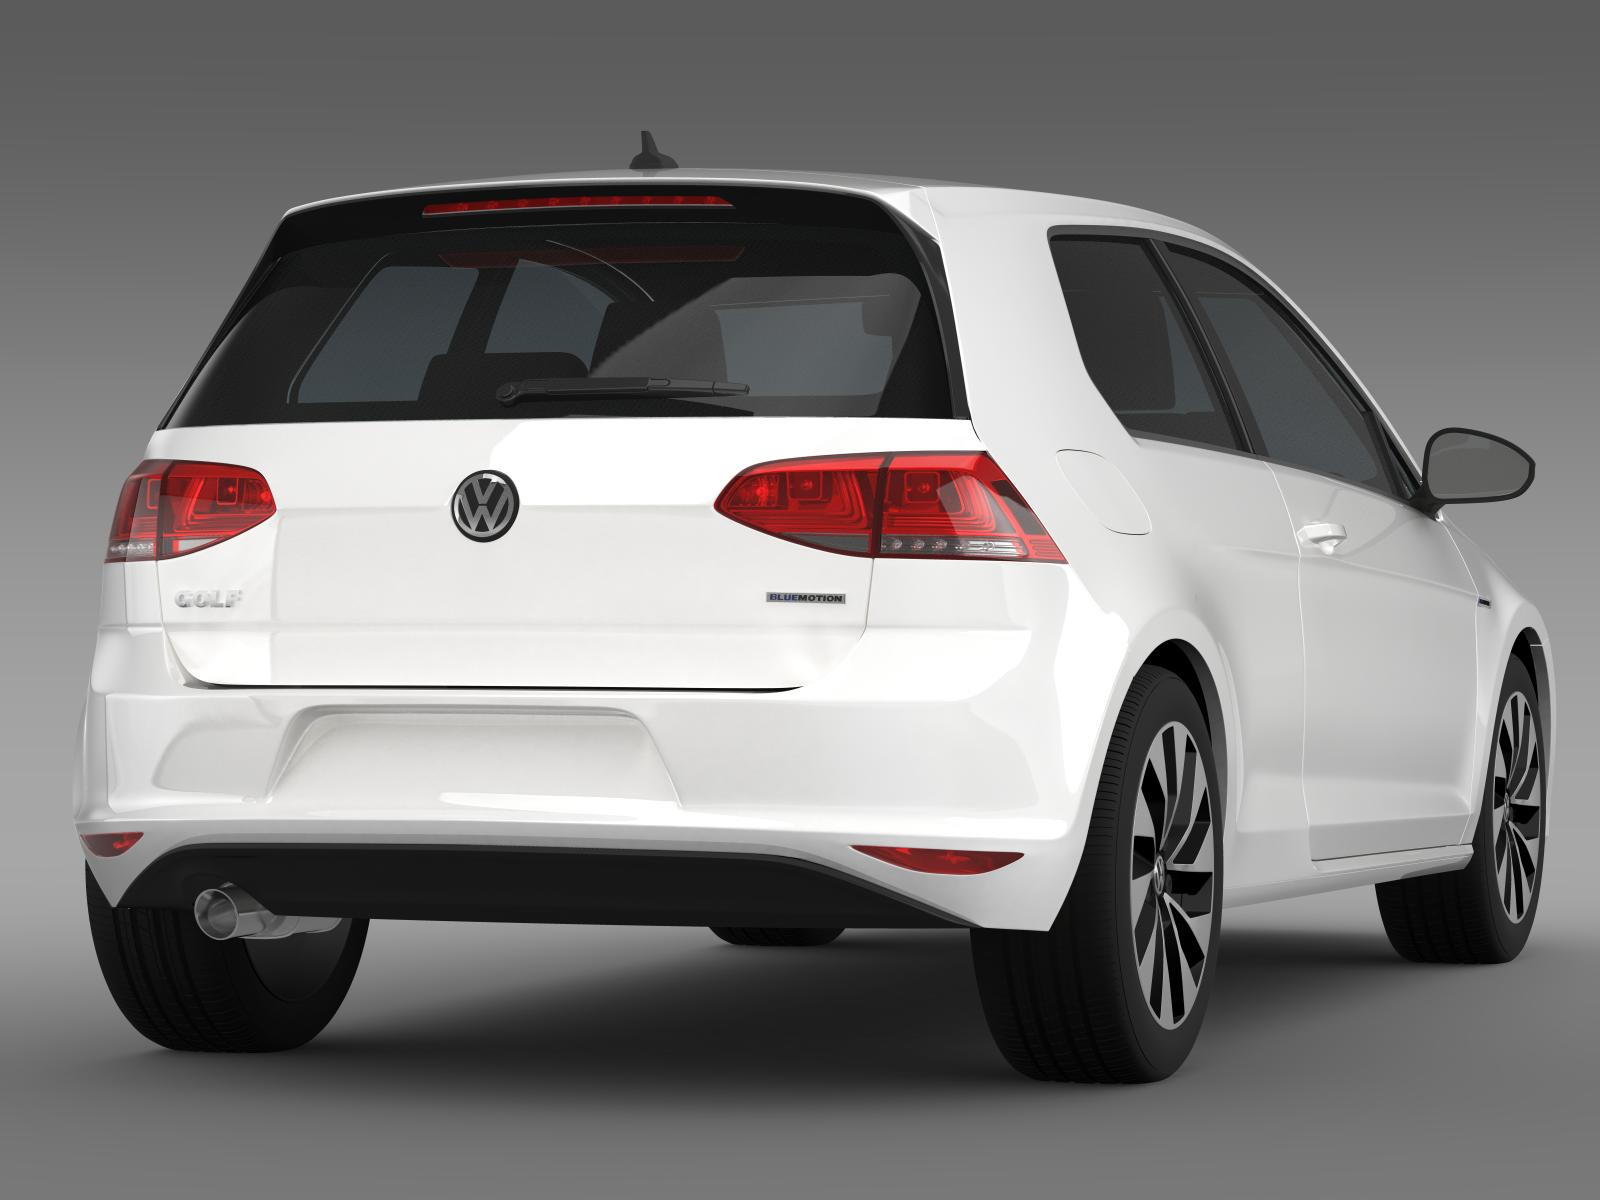 vw golf tdi bluemotion 3 door 2015 3d model buy vw golf tdi bluemotion 3 door 2015 3d model. Black Bedroom Furniture Sets. Home Design Ideas